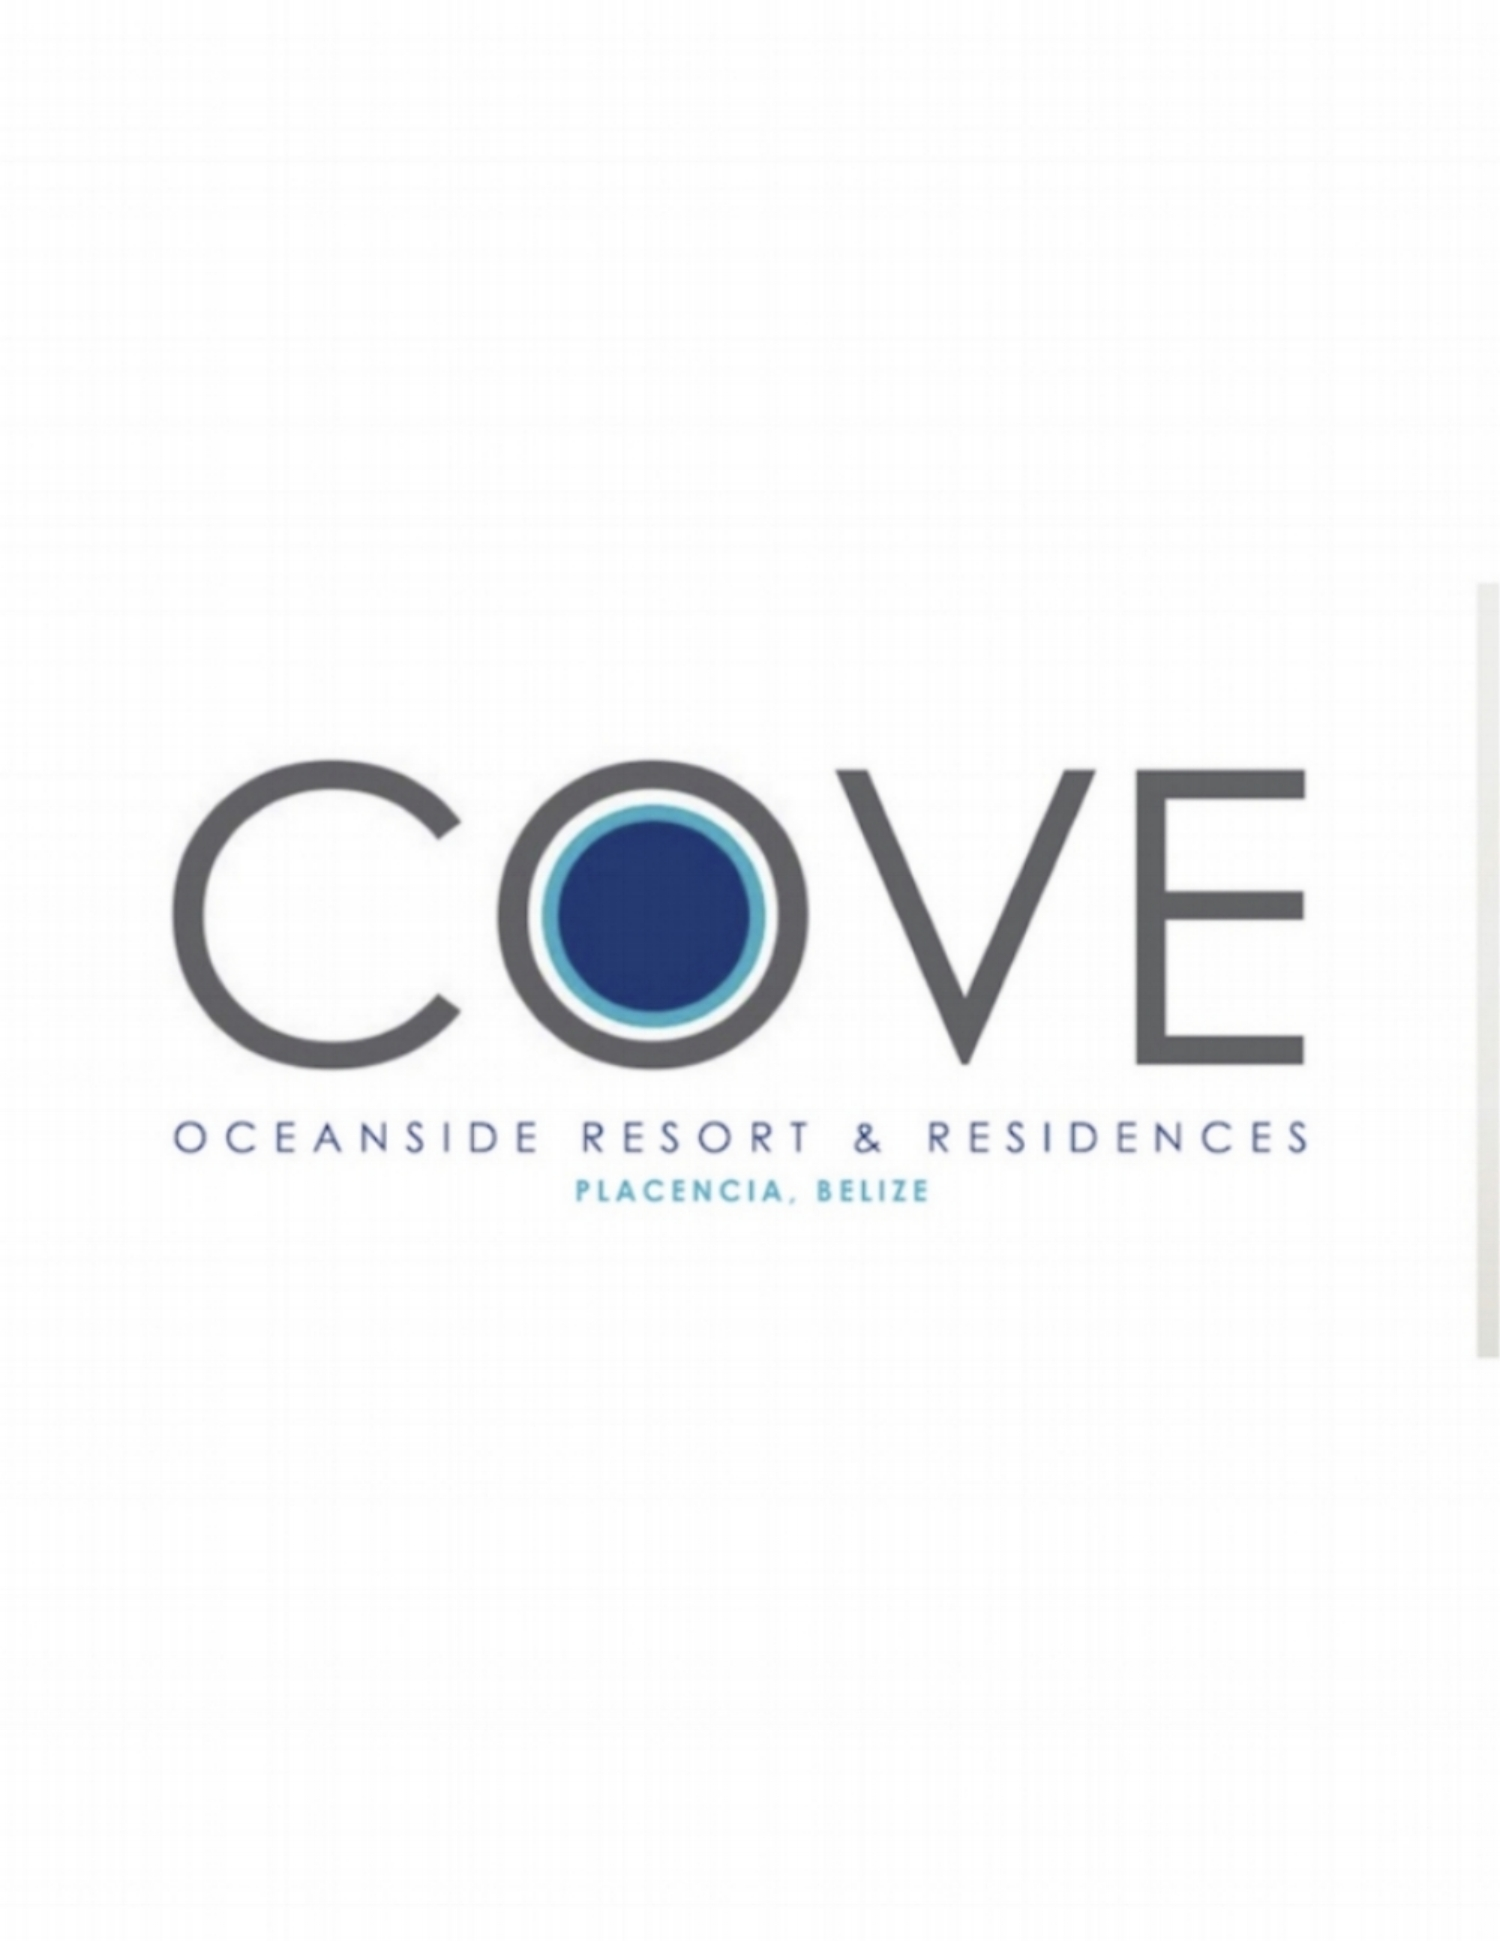 COVE Oceanside Resort & Residences - Placencia, Belize